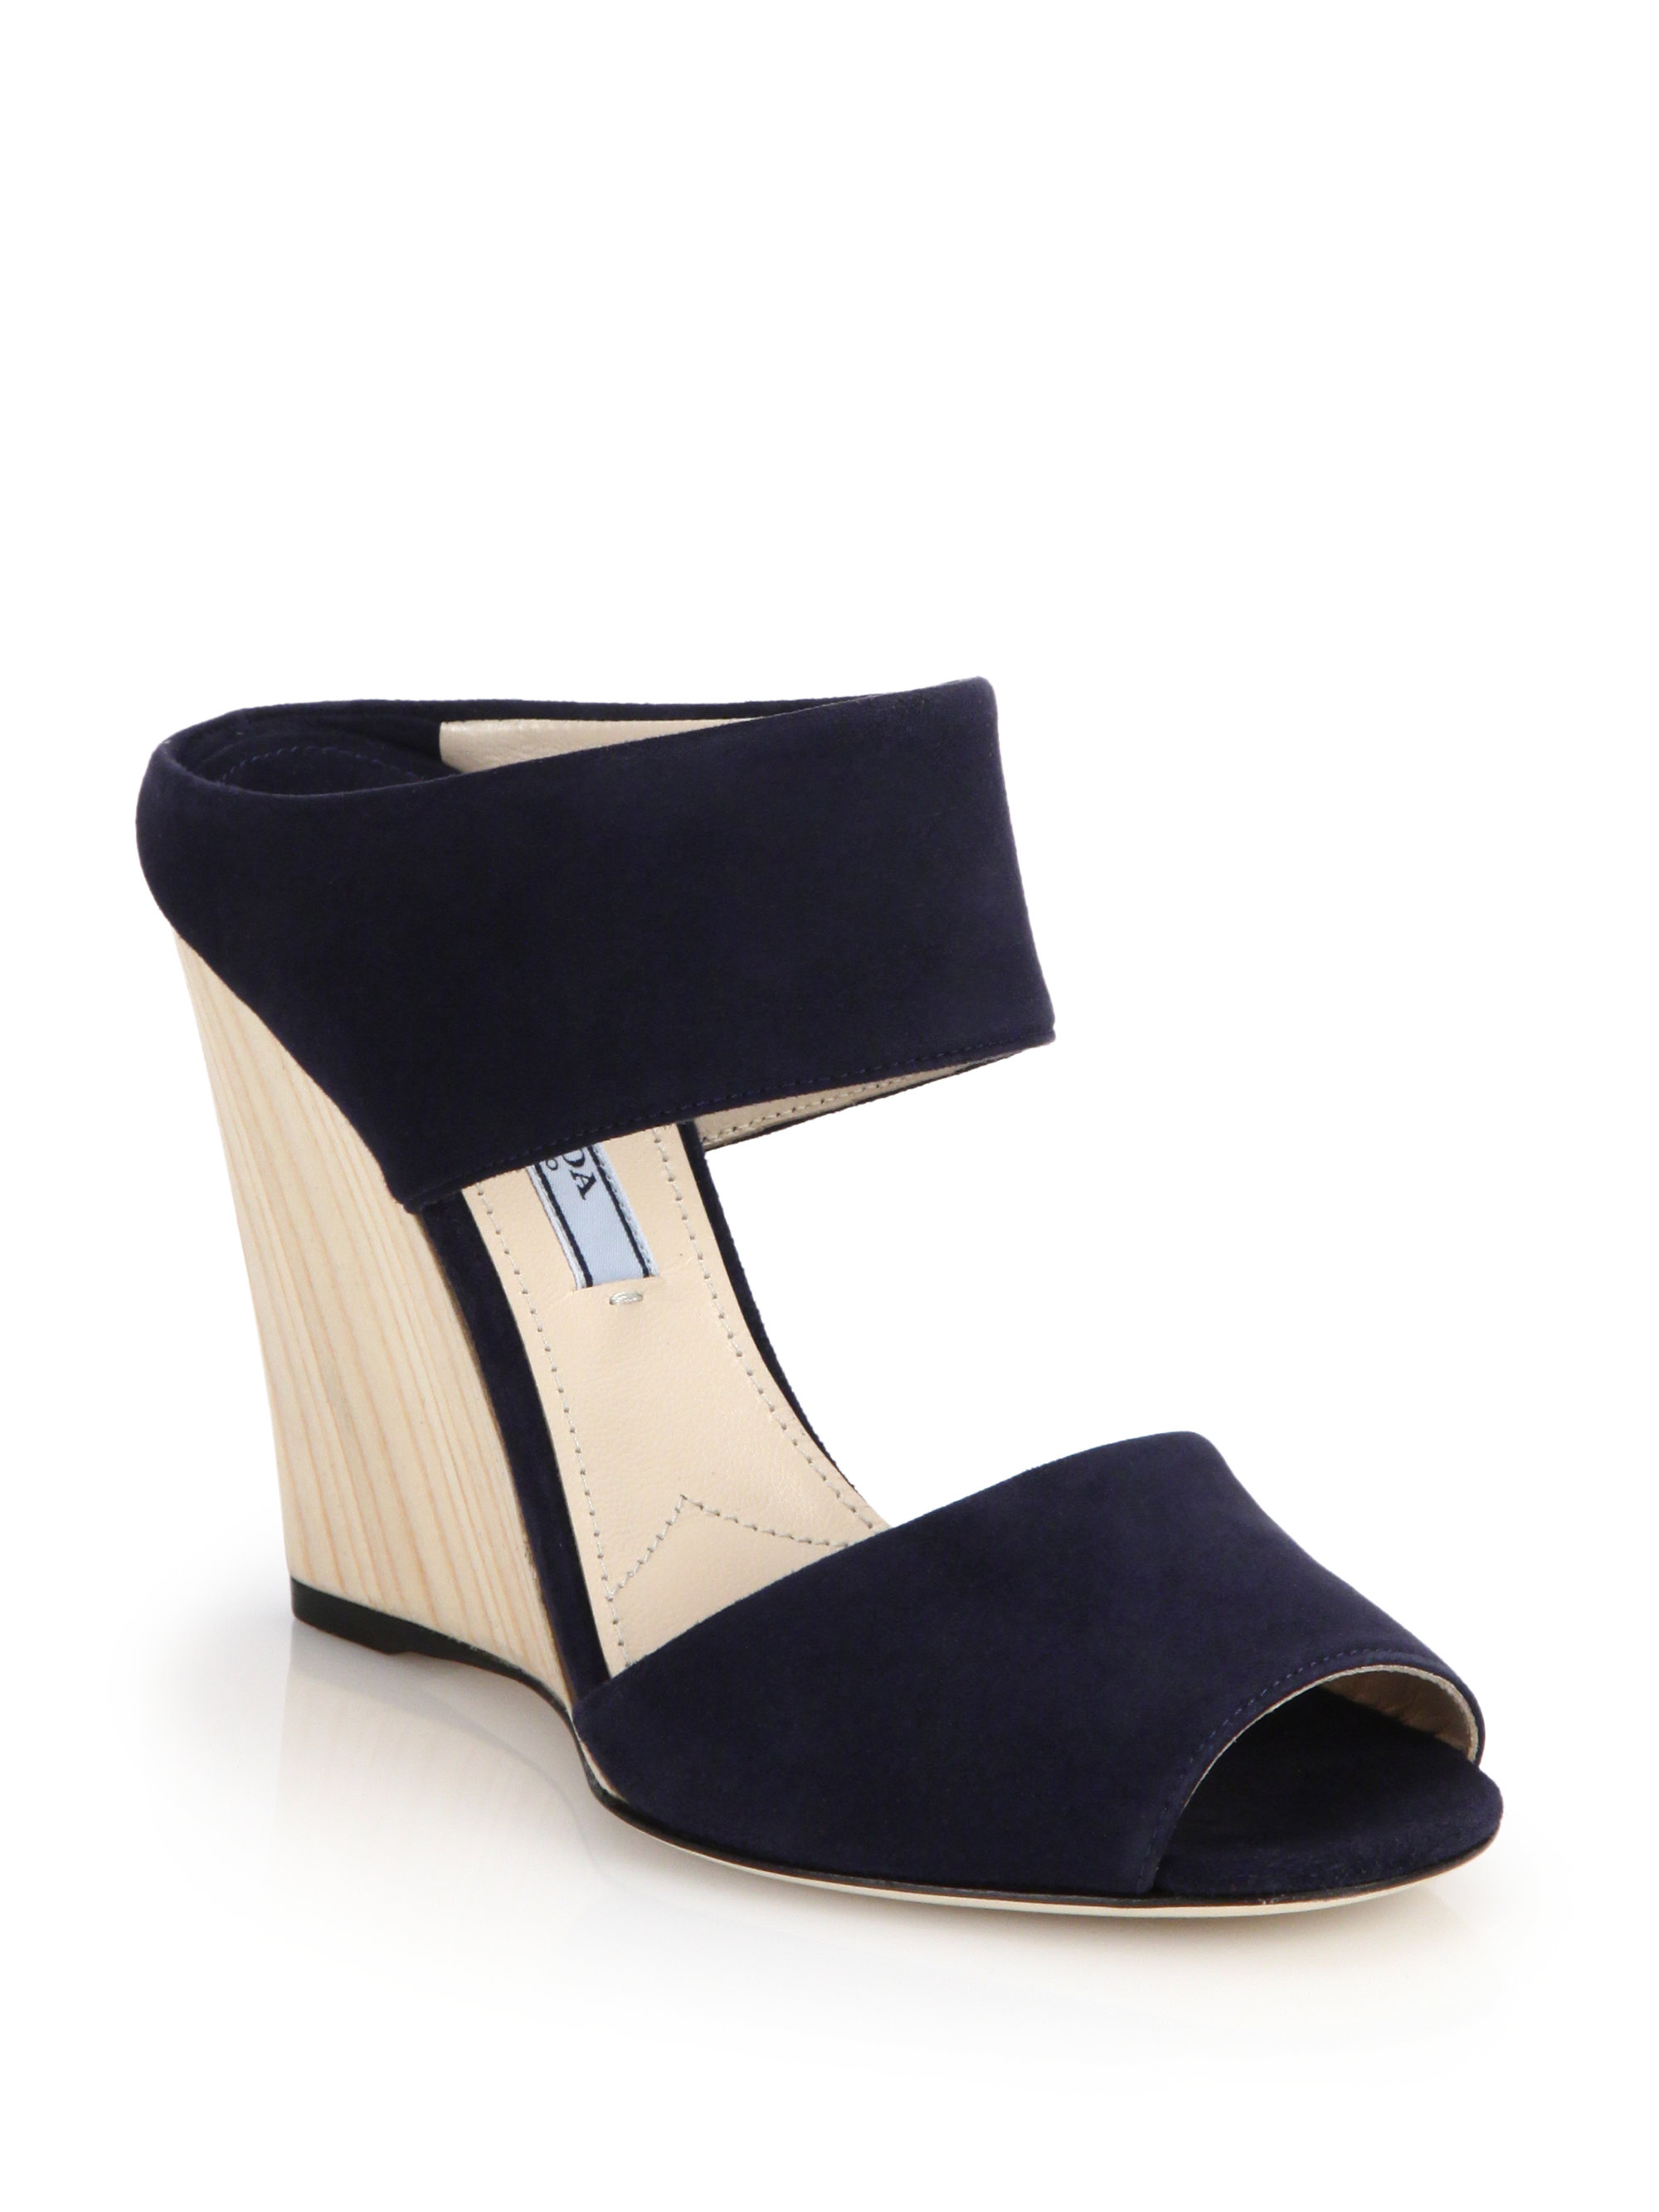 Blue Suede Wedge Shoes Uk